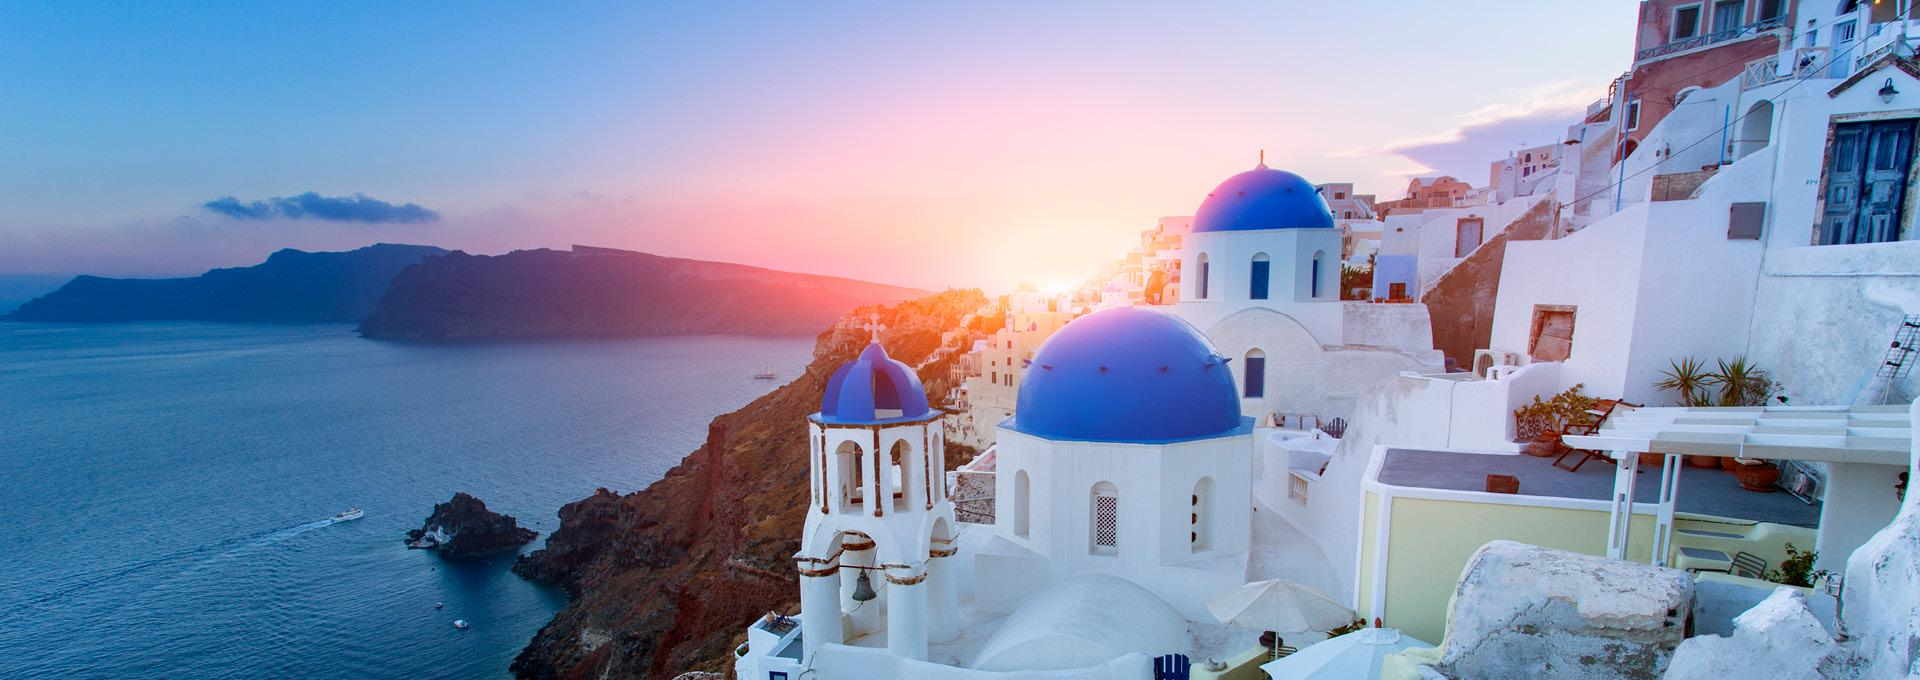 A scenic view at sunset in Greece